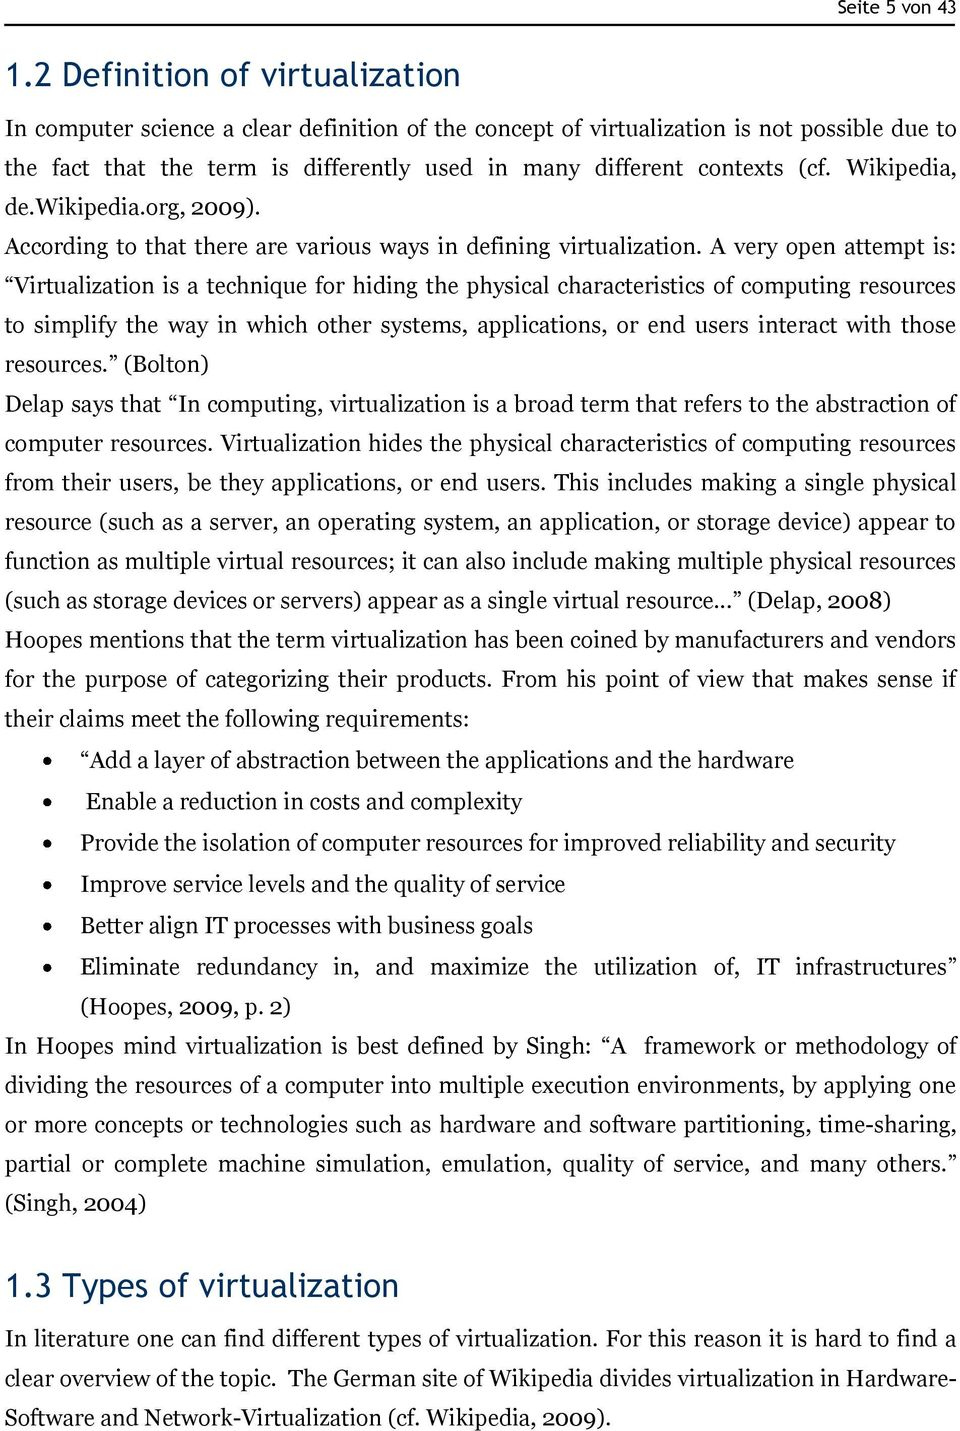 Wikipedia, de.wikipedia.org, 2009). According to that there are various ways in defining virtualization.